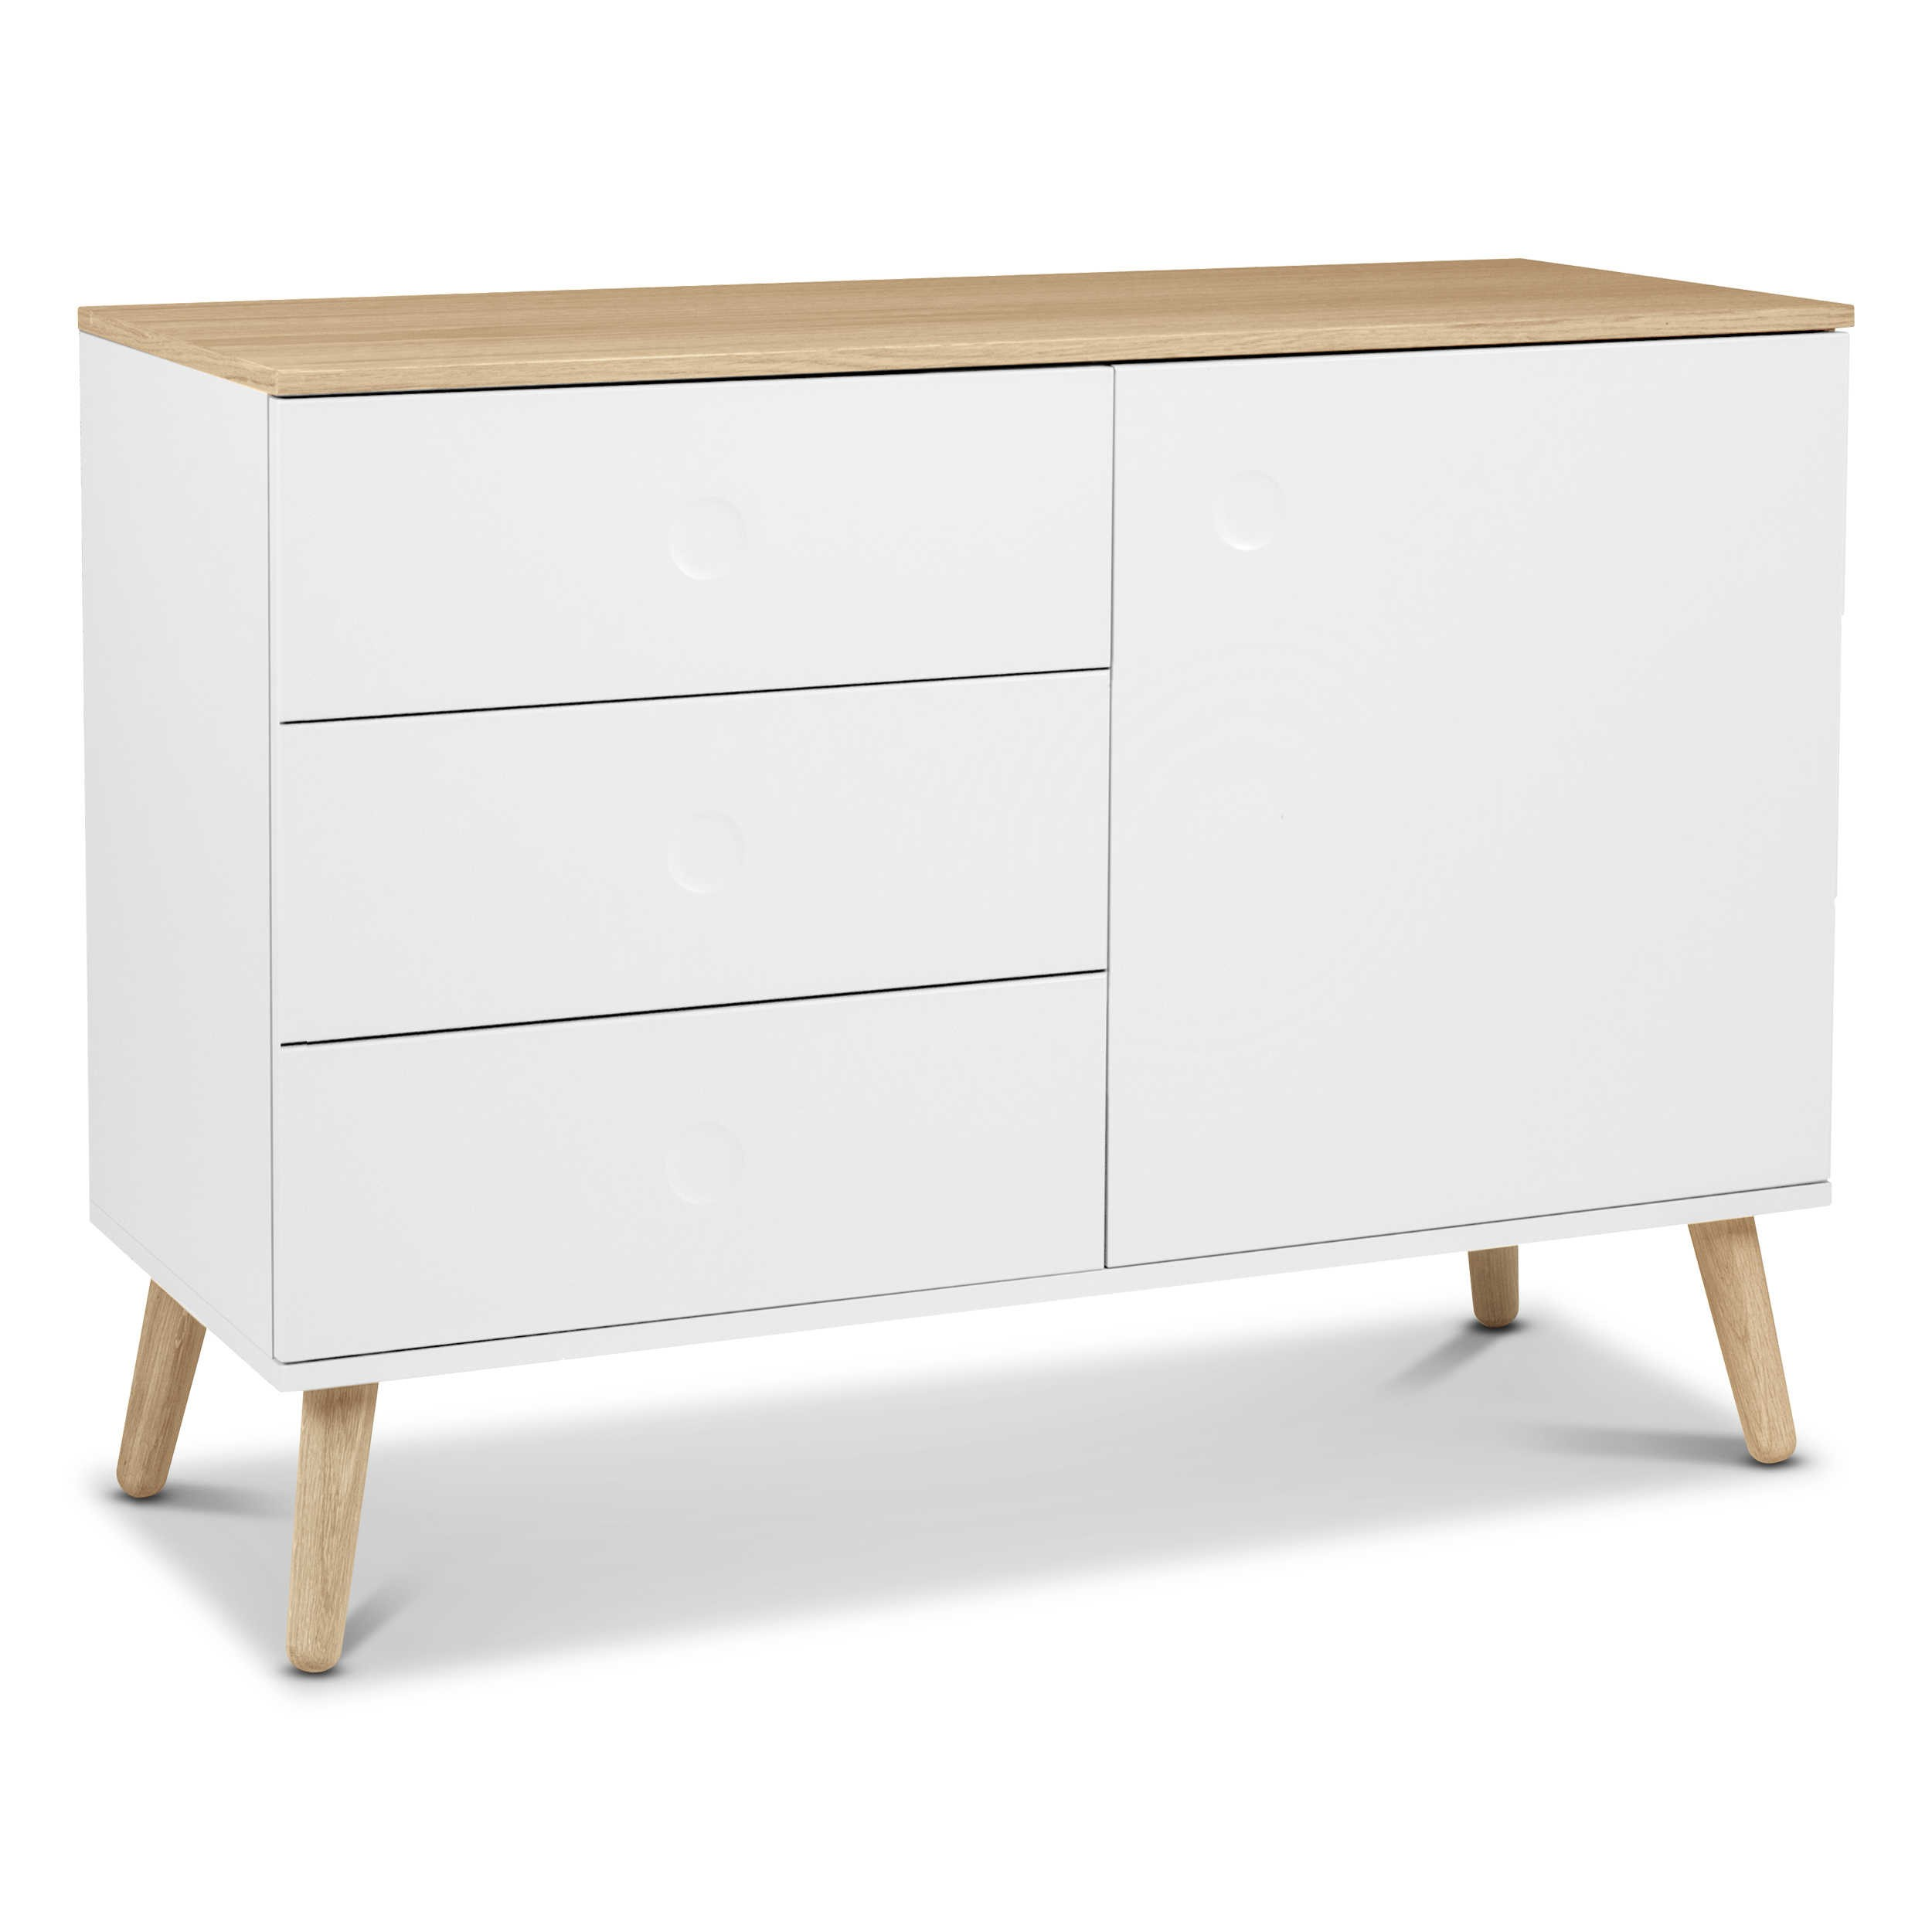 tenzo sideboard dot wei lack hochglanz online kaufen bei woonio. Black Bedroom Furniture Sets. Home Design Ideas